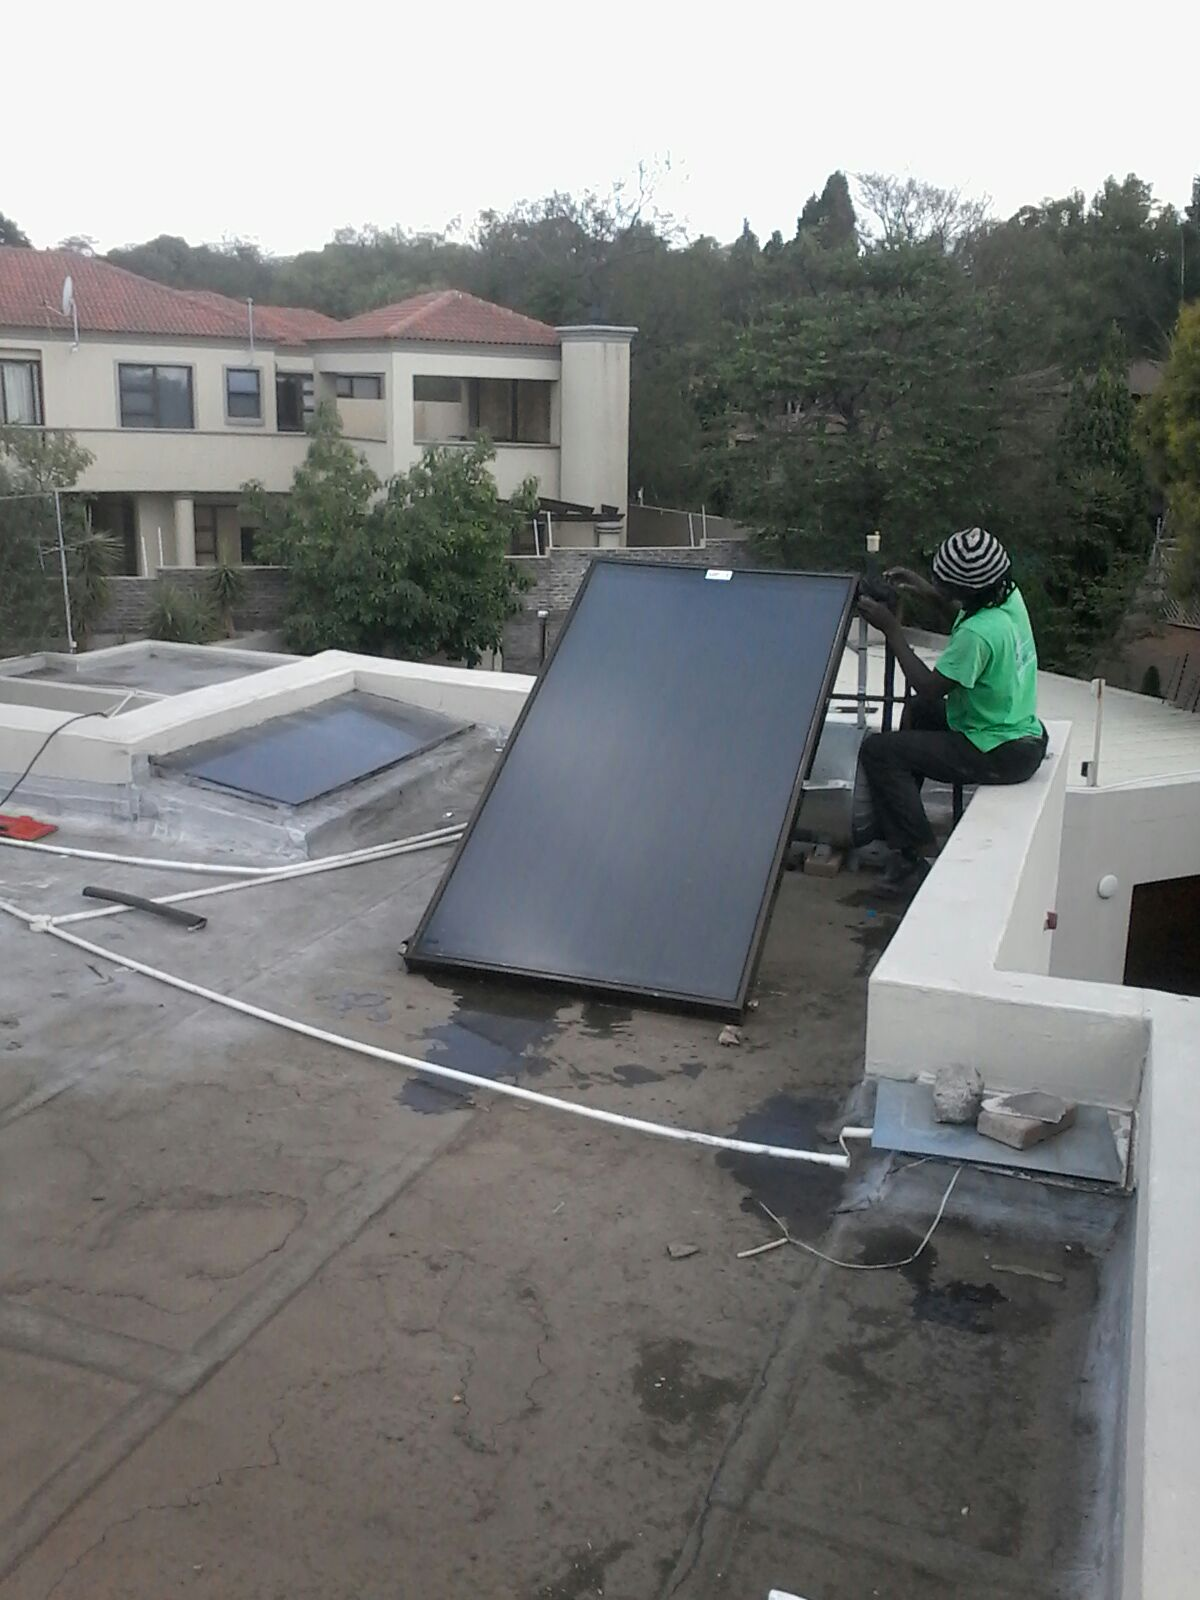 New Solar Panels and Repairs